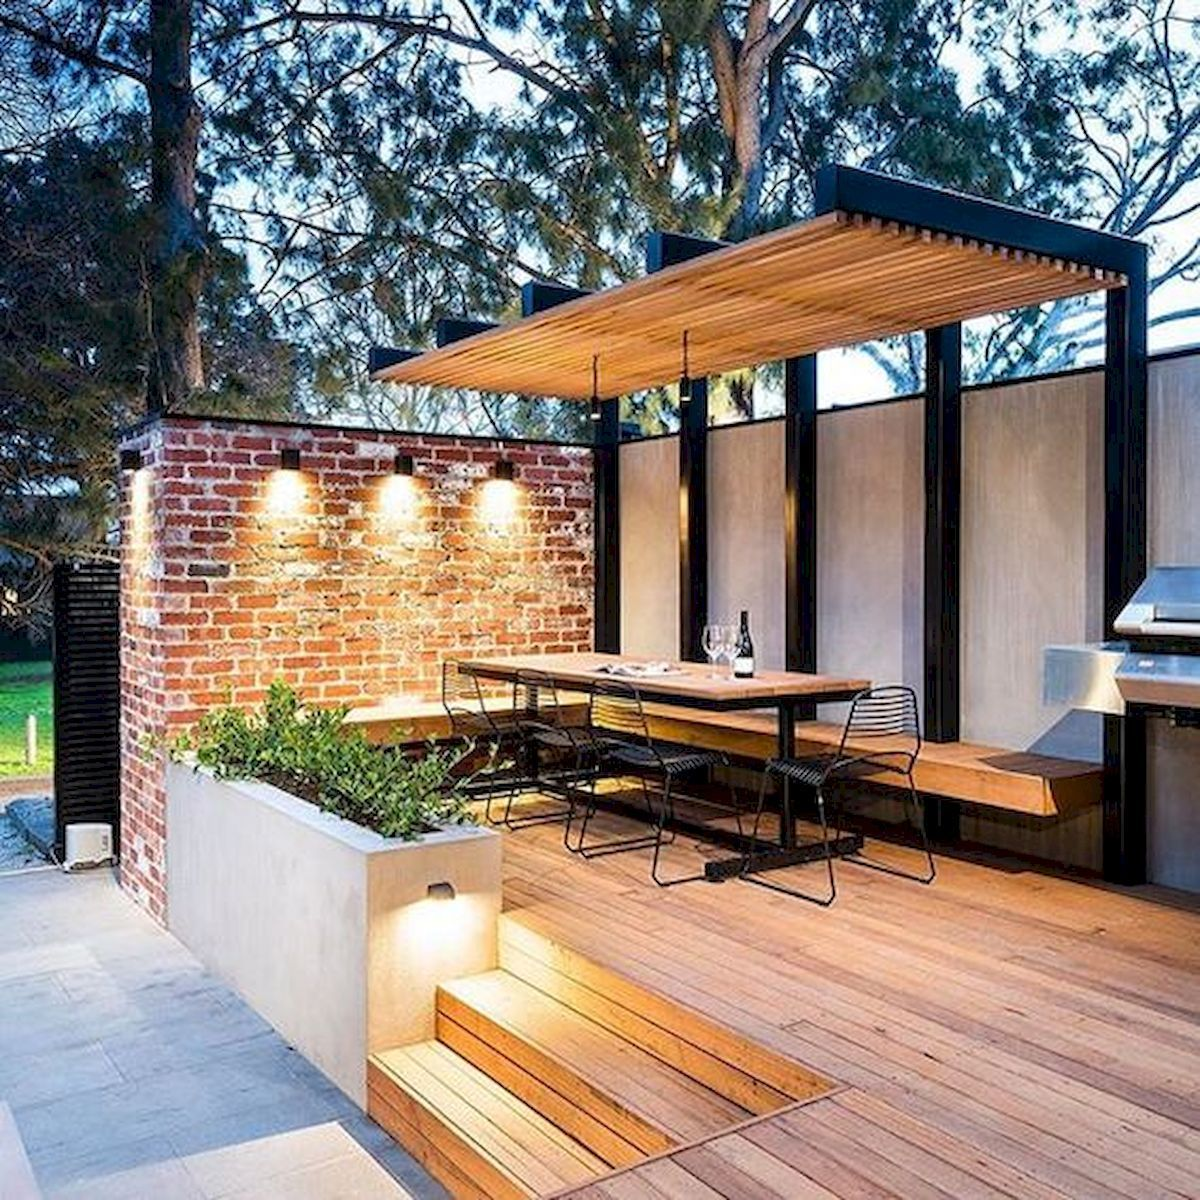 23 Awesome Built In Planter Ideas To Upgrade Your Outdoor Space 19 Backyard Pergola Backyard Pergola